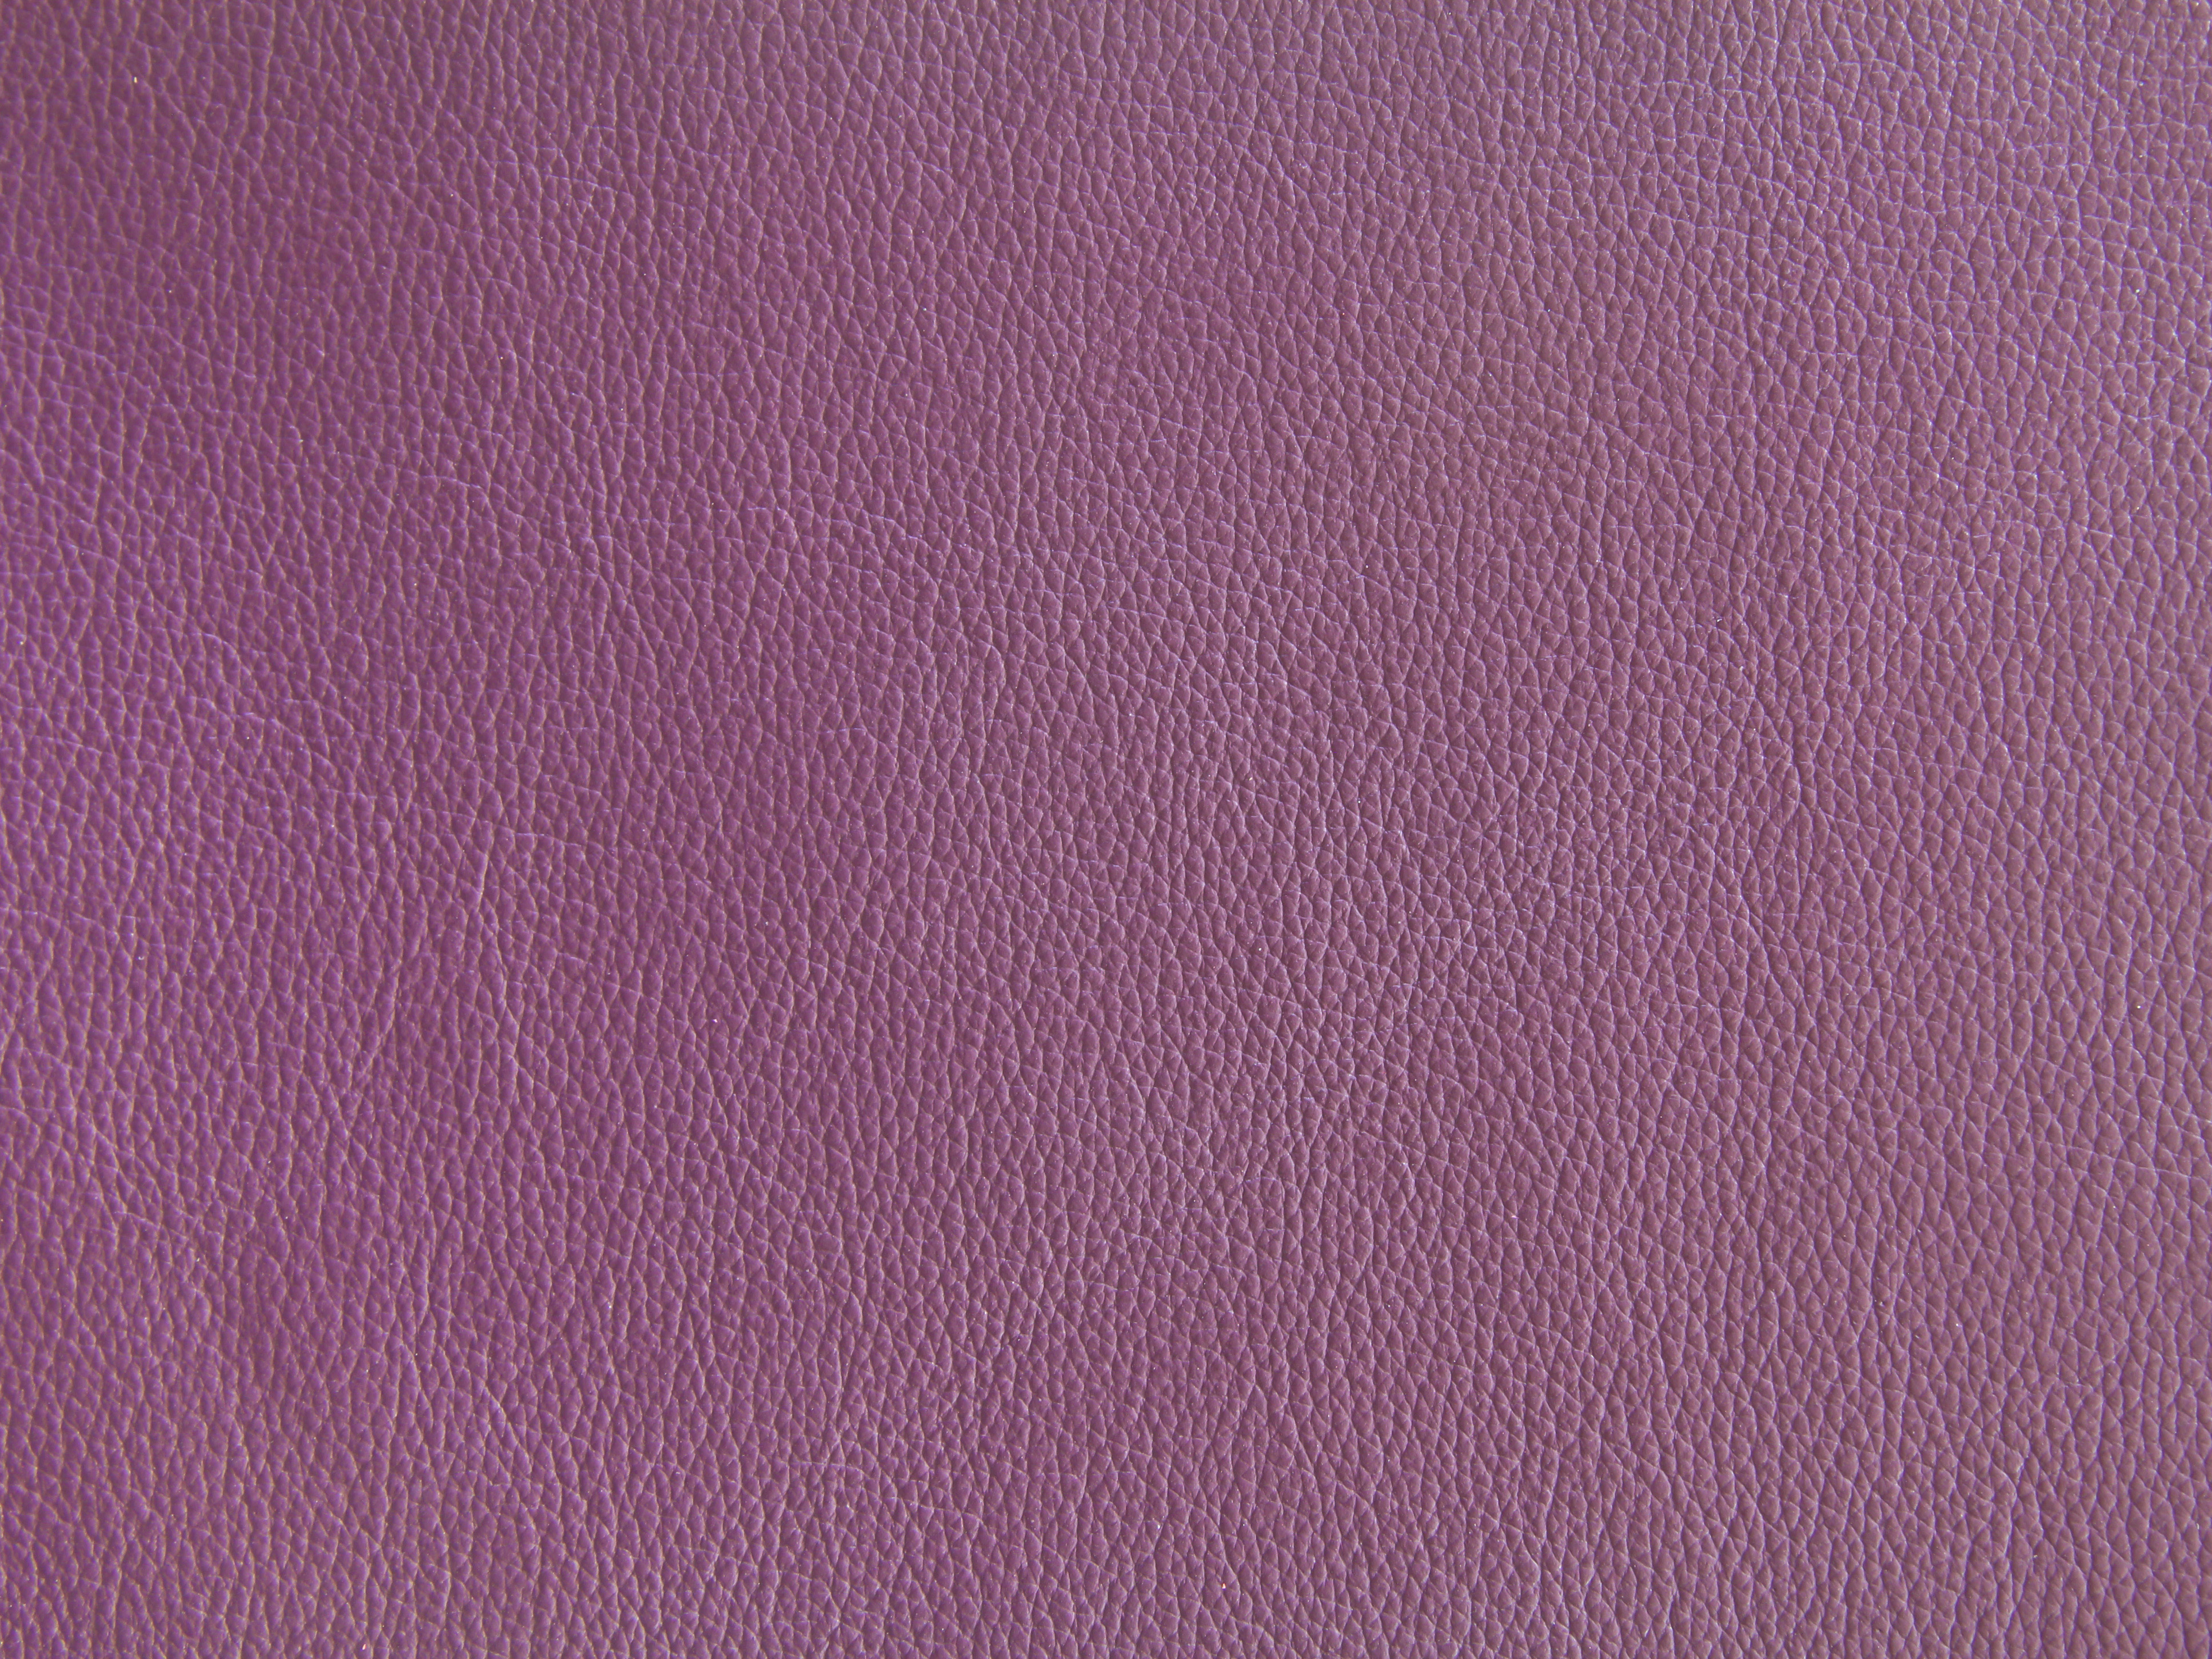 purpleleathertexturecolorfulstockwallpaperdesign